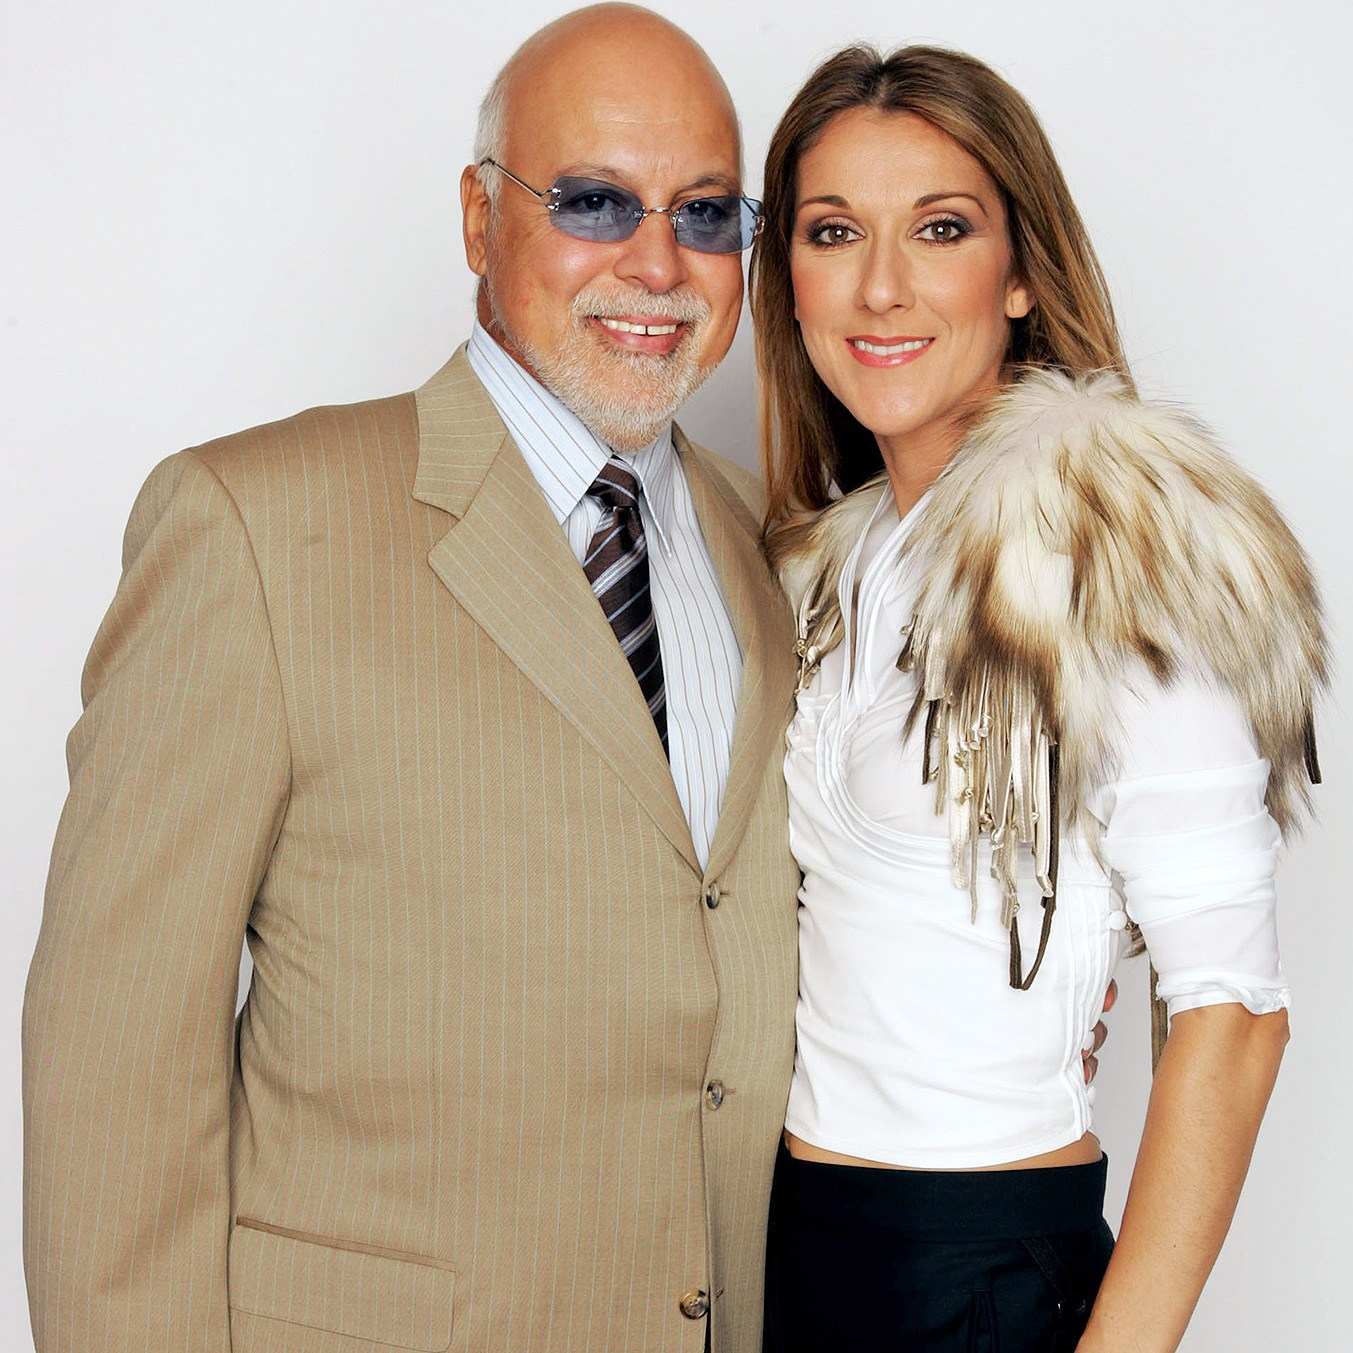 Celine Dion, Rene Angelil, Husband